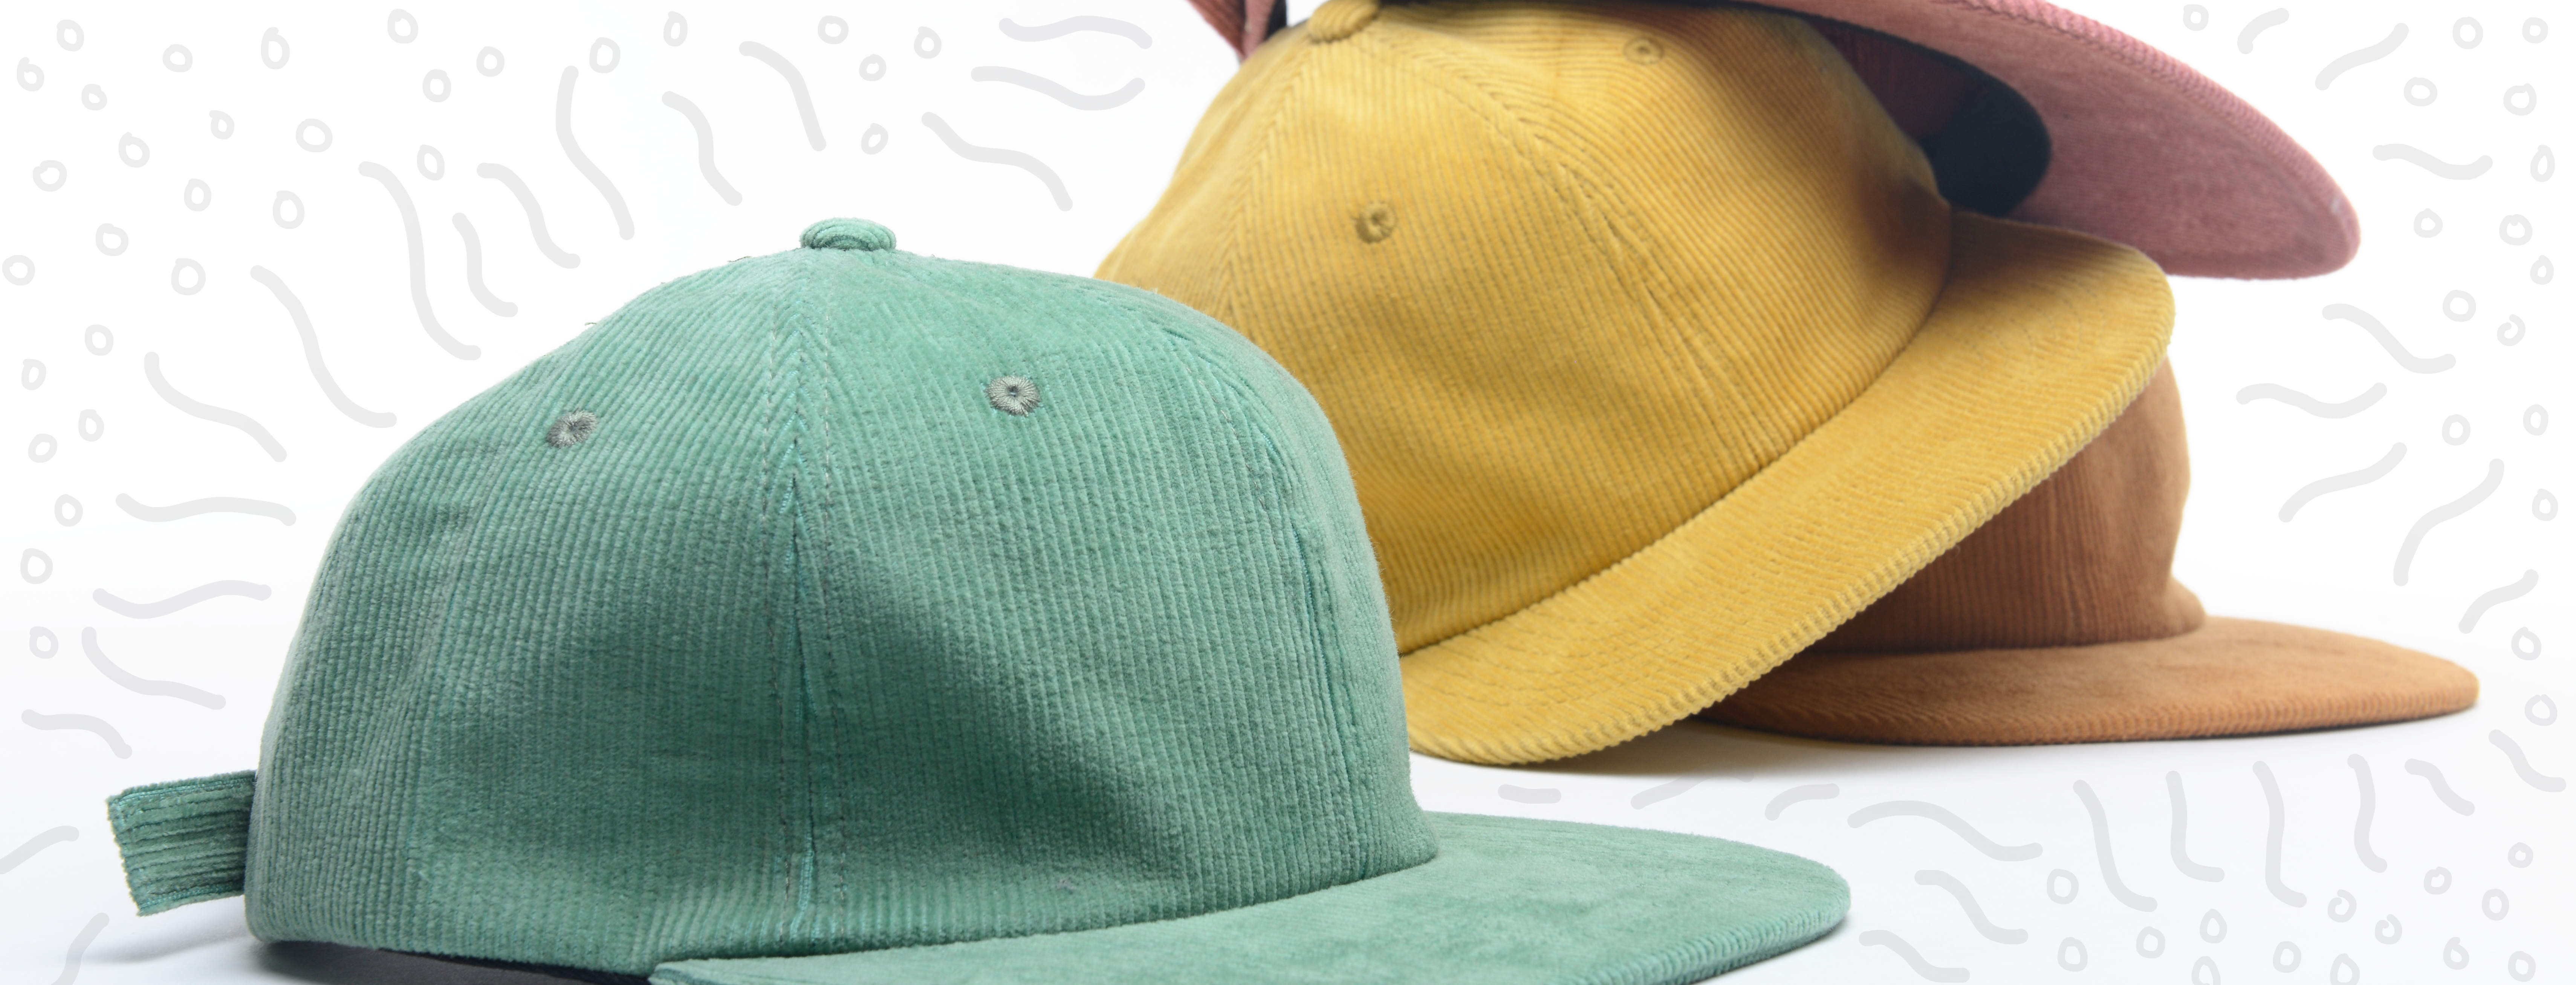 Blank Hats vs Custom Hats: Which One Right for You? - image Delusion-Web-Banner on http://blog.delusionmfg.com